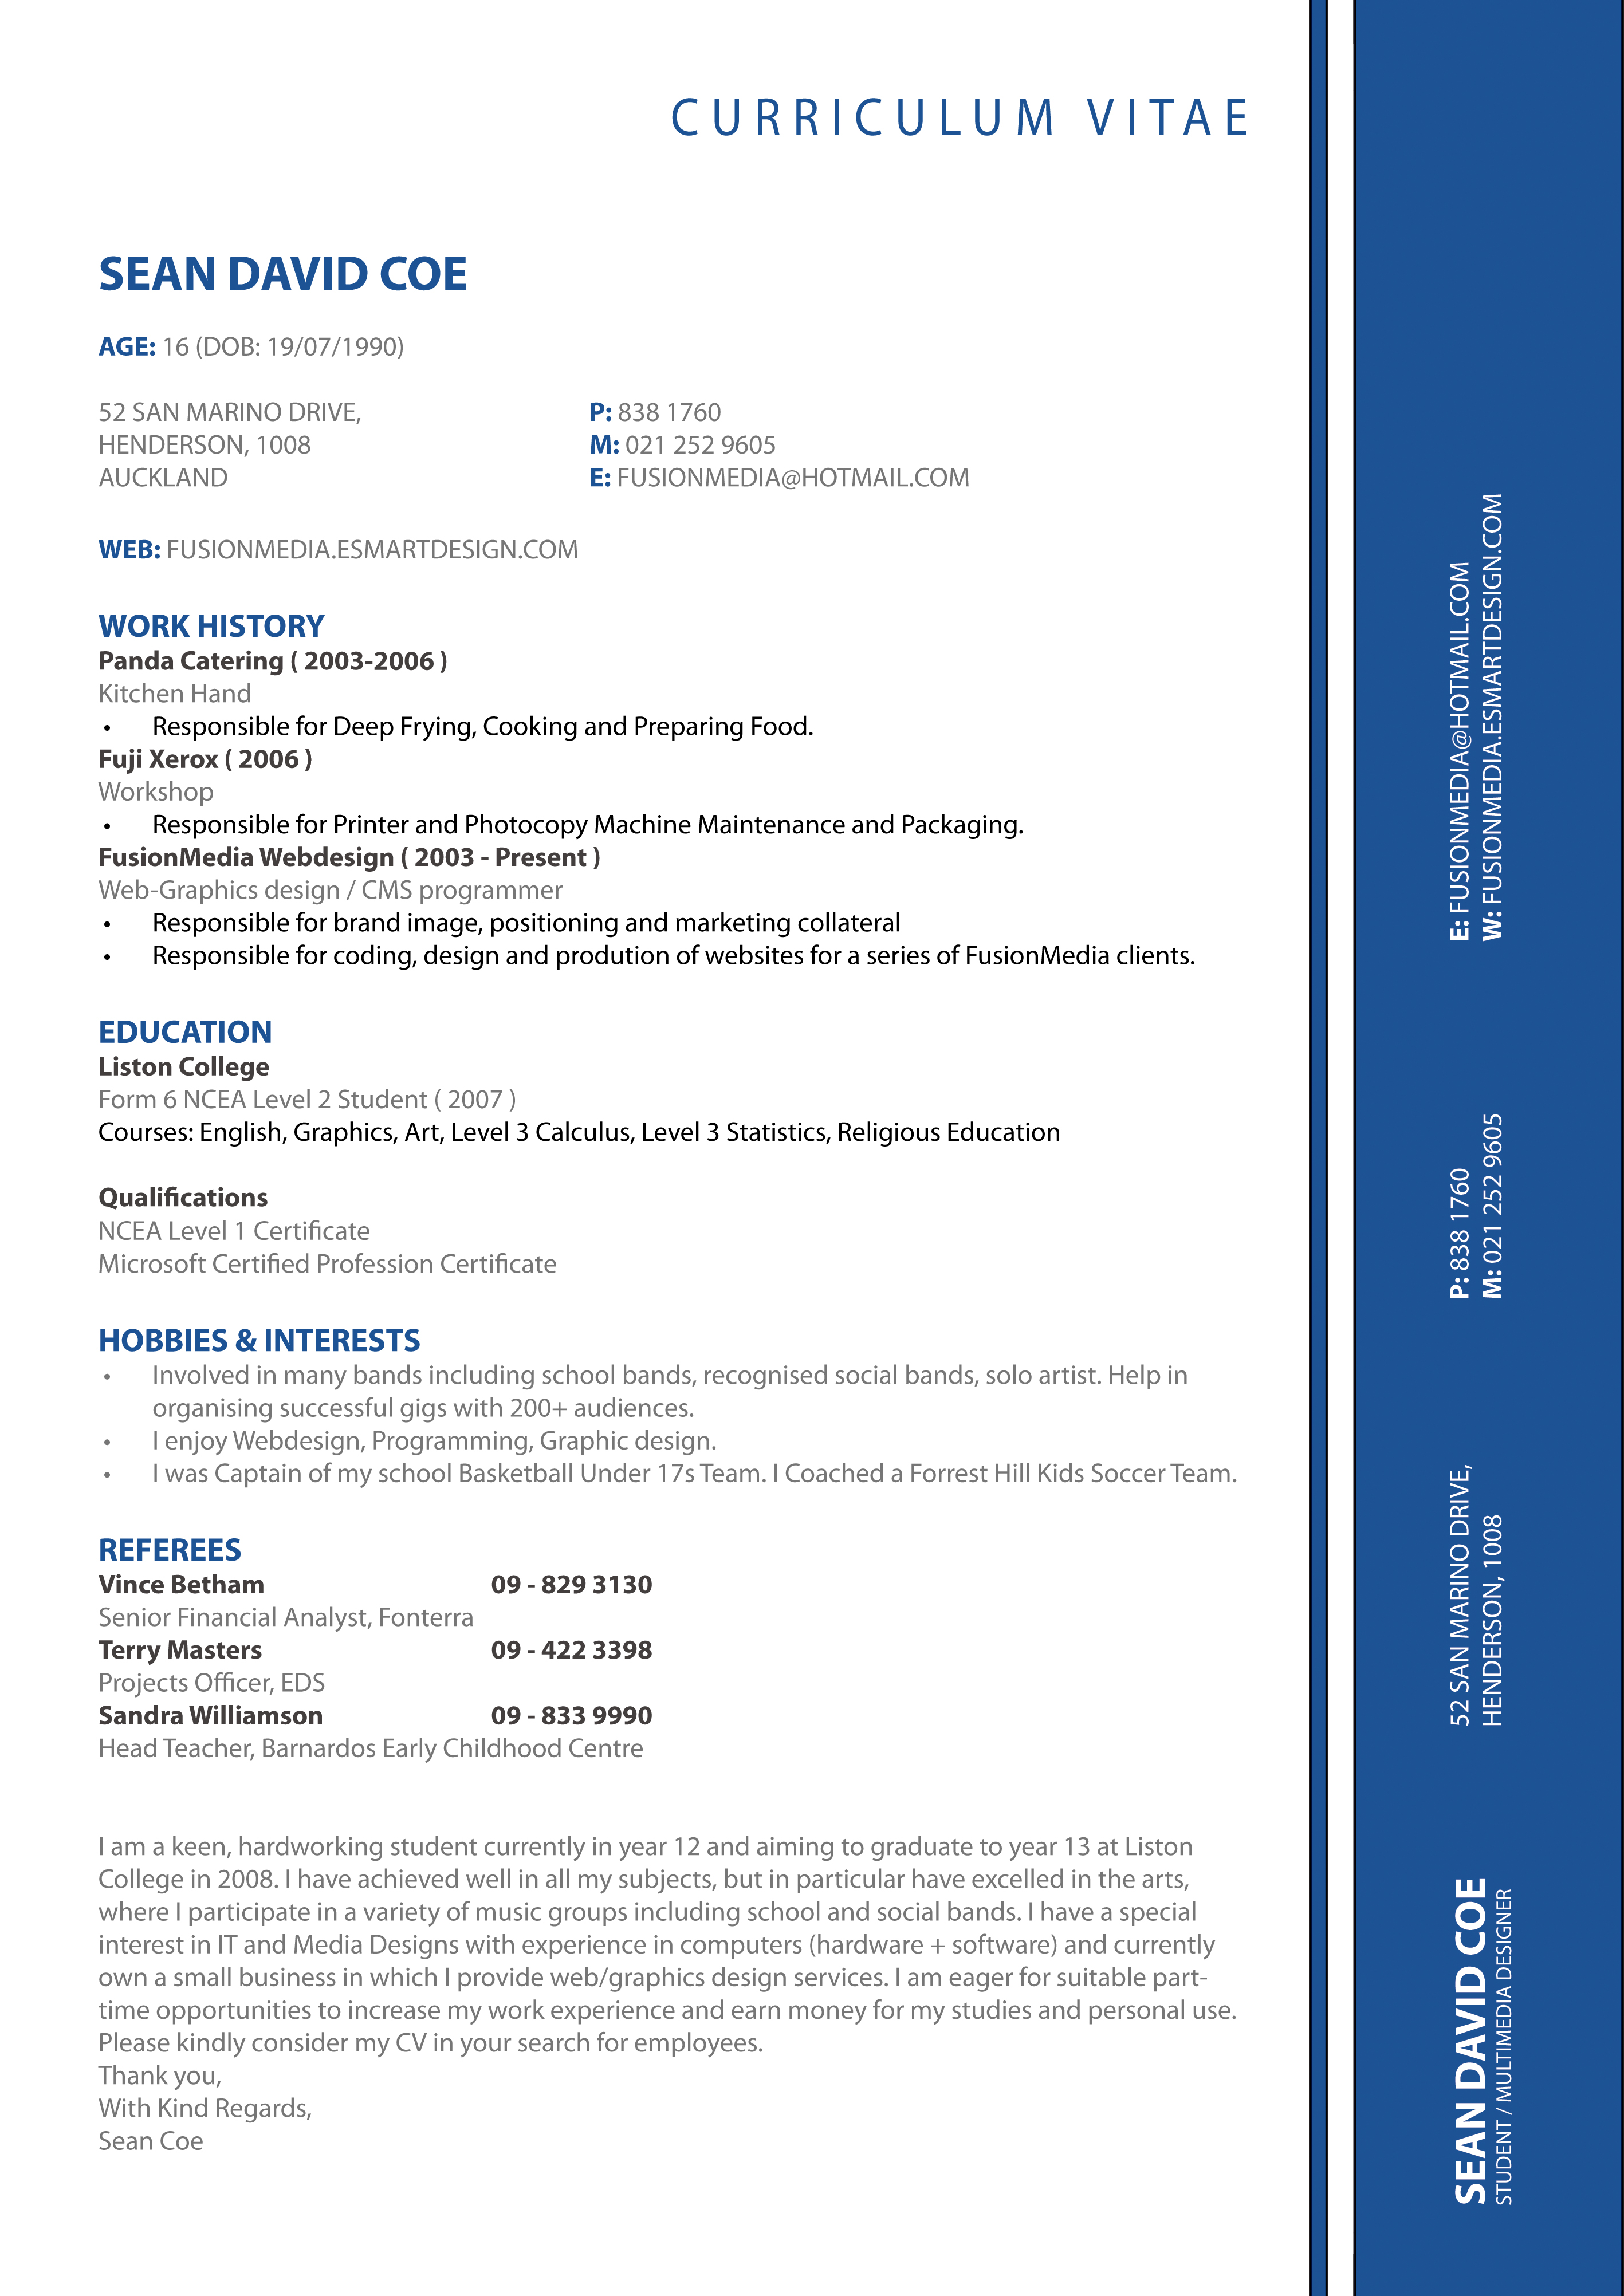 CV Format,Design,CV Templates,CV Samples,Example-12